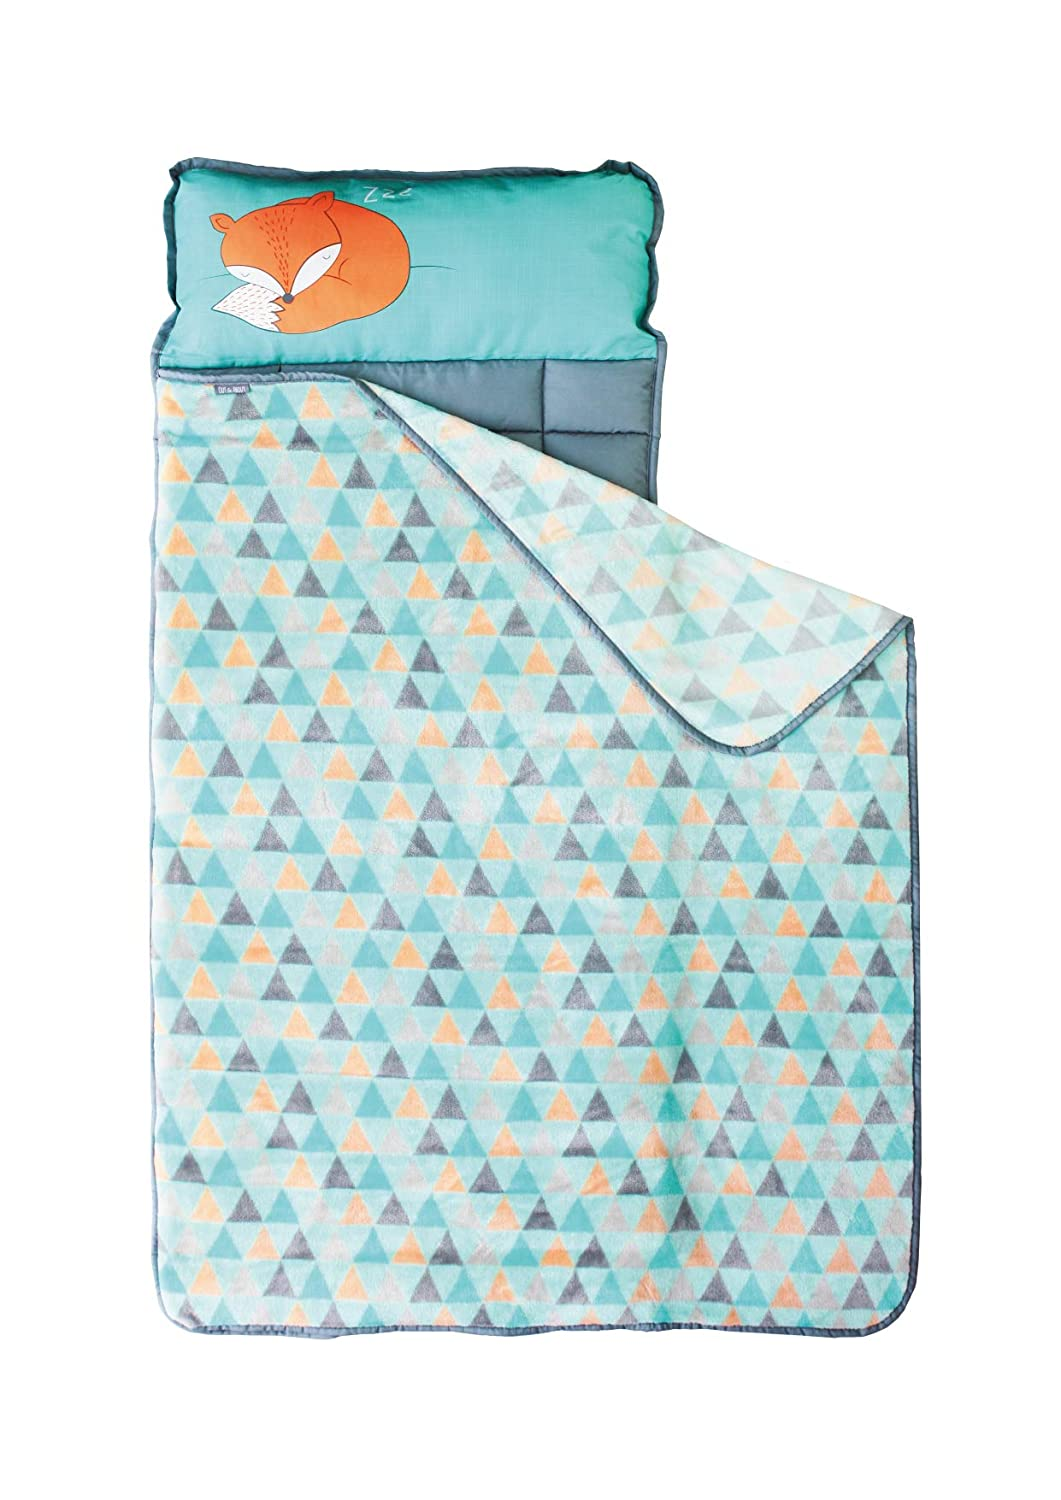 Homezy Toddler Gifts - Nap Mat for Toddlers at Preschool Kinder Daycare – Portable Sleeping Bag Mats w Blanket + Pillow for Boys or Girls (Sleepy Fox) : Baby